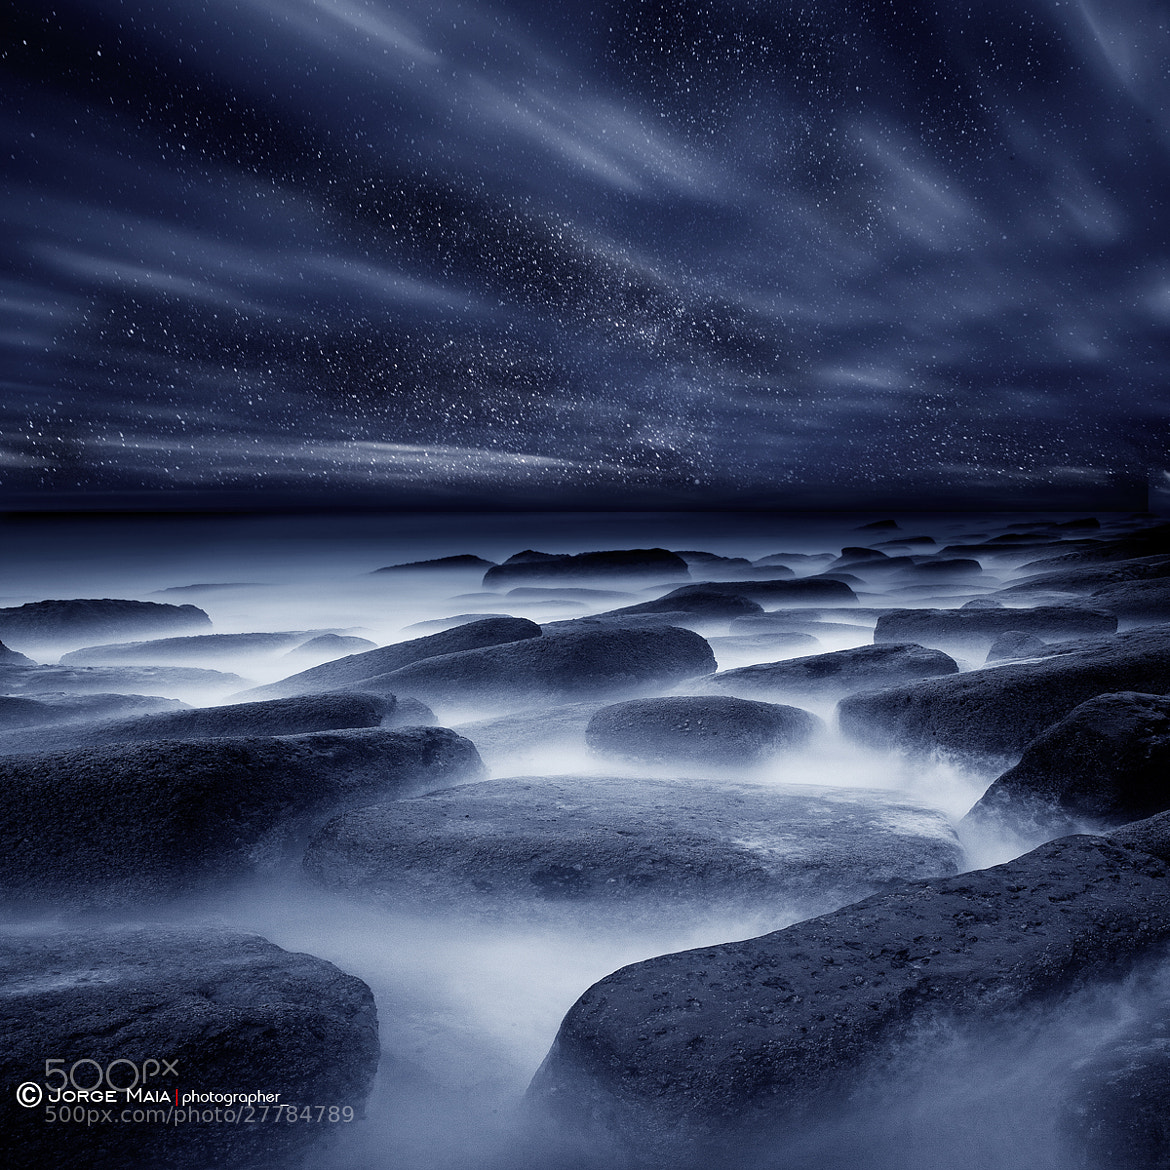 Photograph Morpheus kingdom  by Jorge Maia on 500px